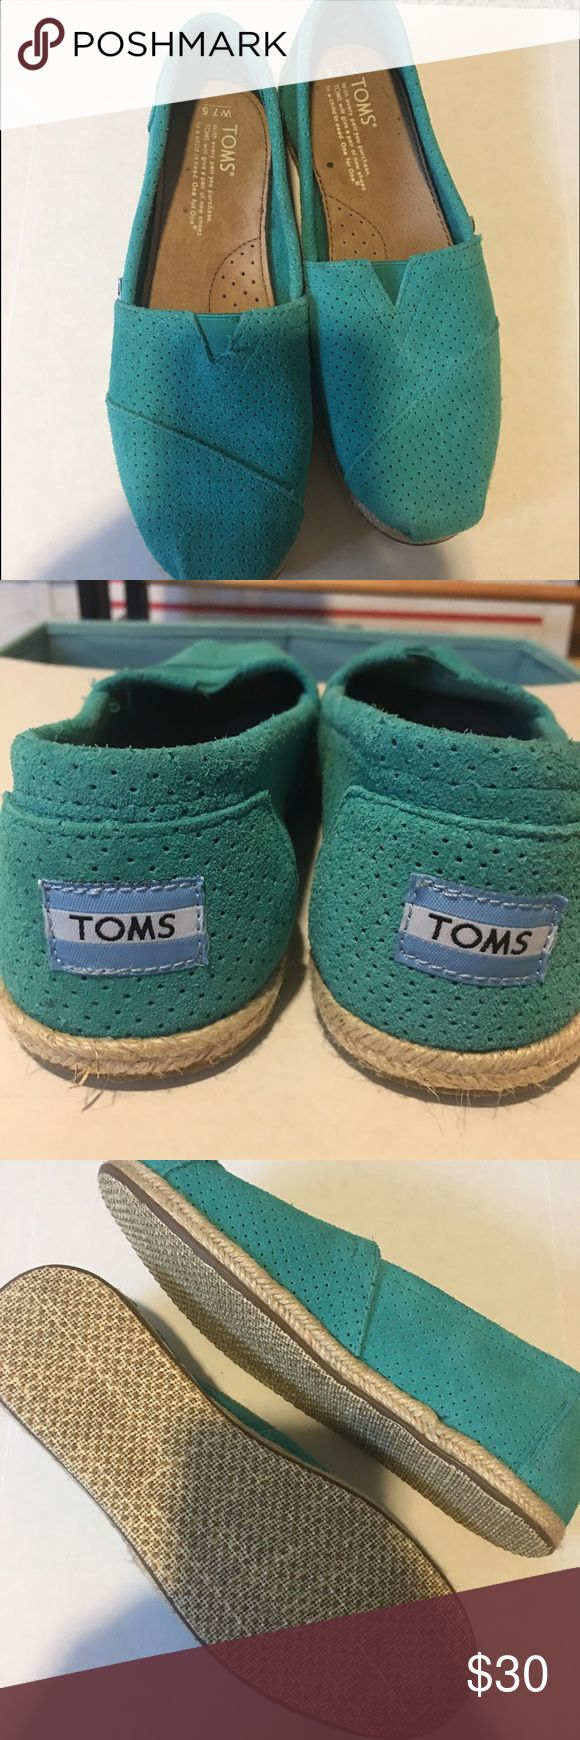 Toms shoes Pretty teal toms! Like new condition no flaws I have a toms bag I can ship in if you would like TOMS Shoes